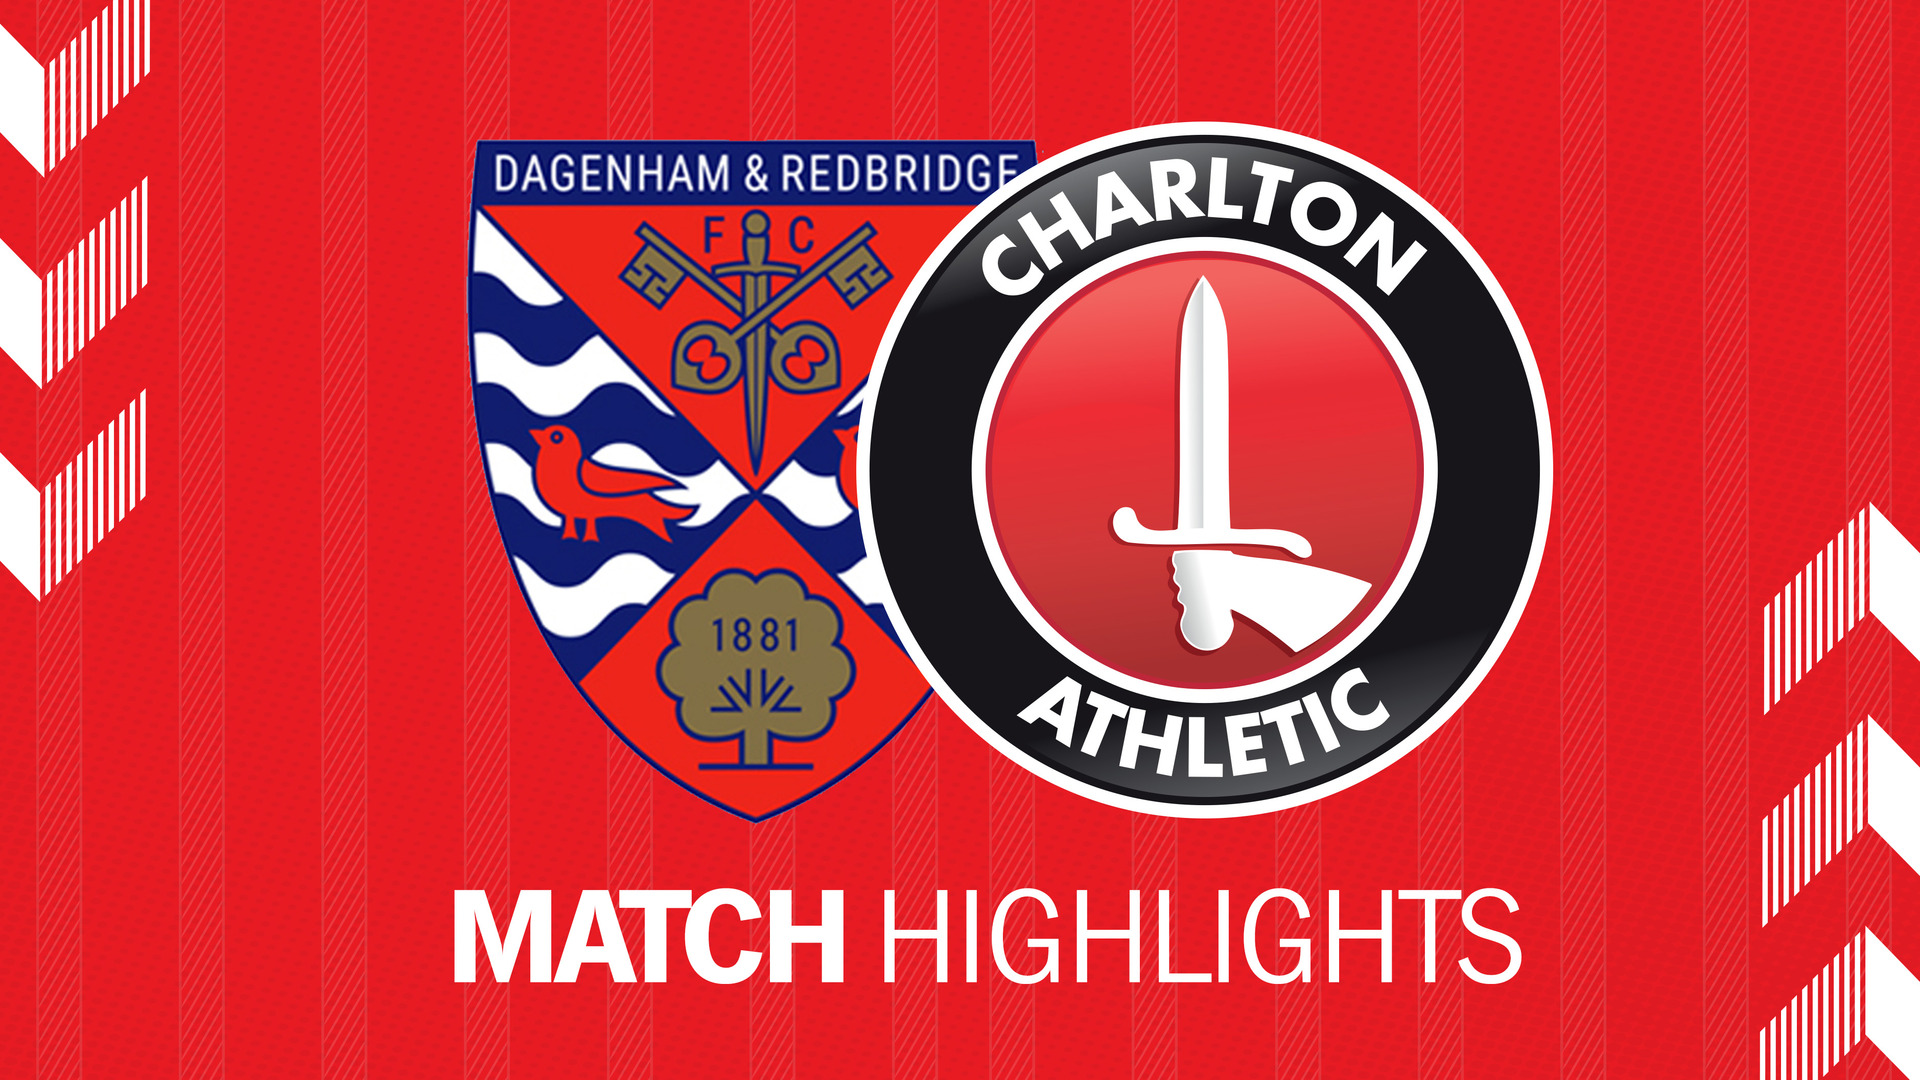 HIGHLIGHTS | Dagenham & Redbridge 0 Charlton 4 (July 2019)